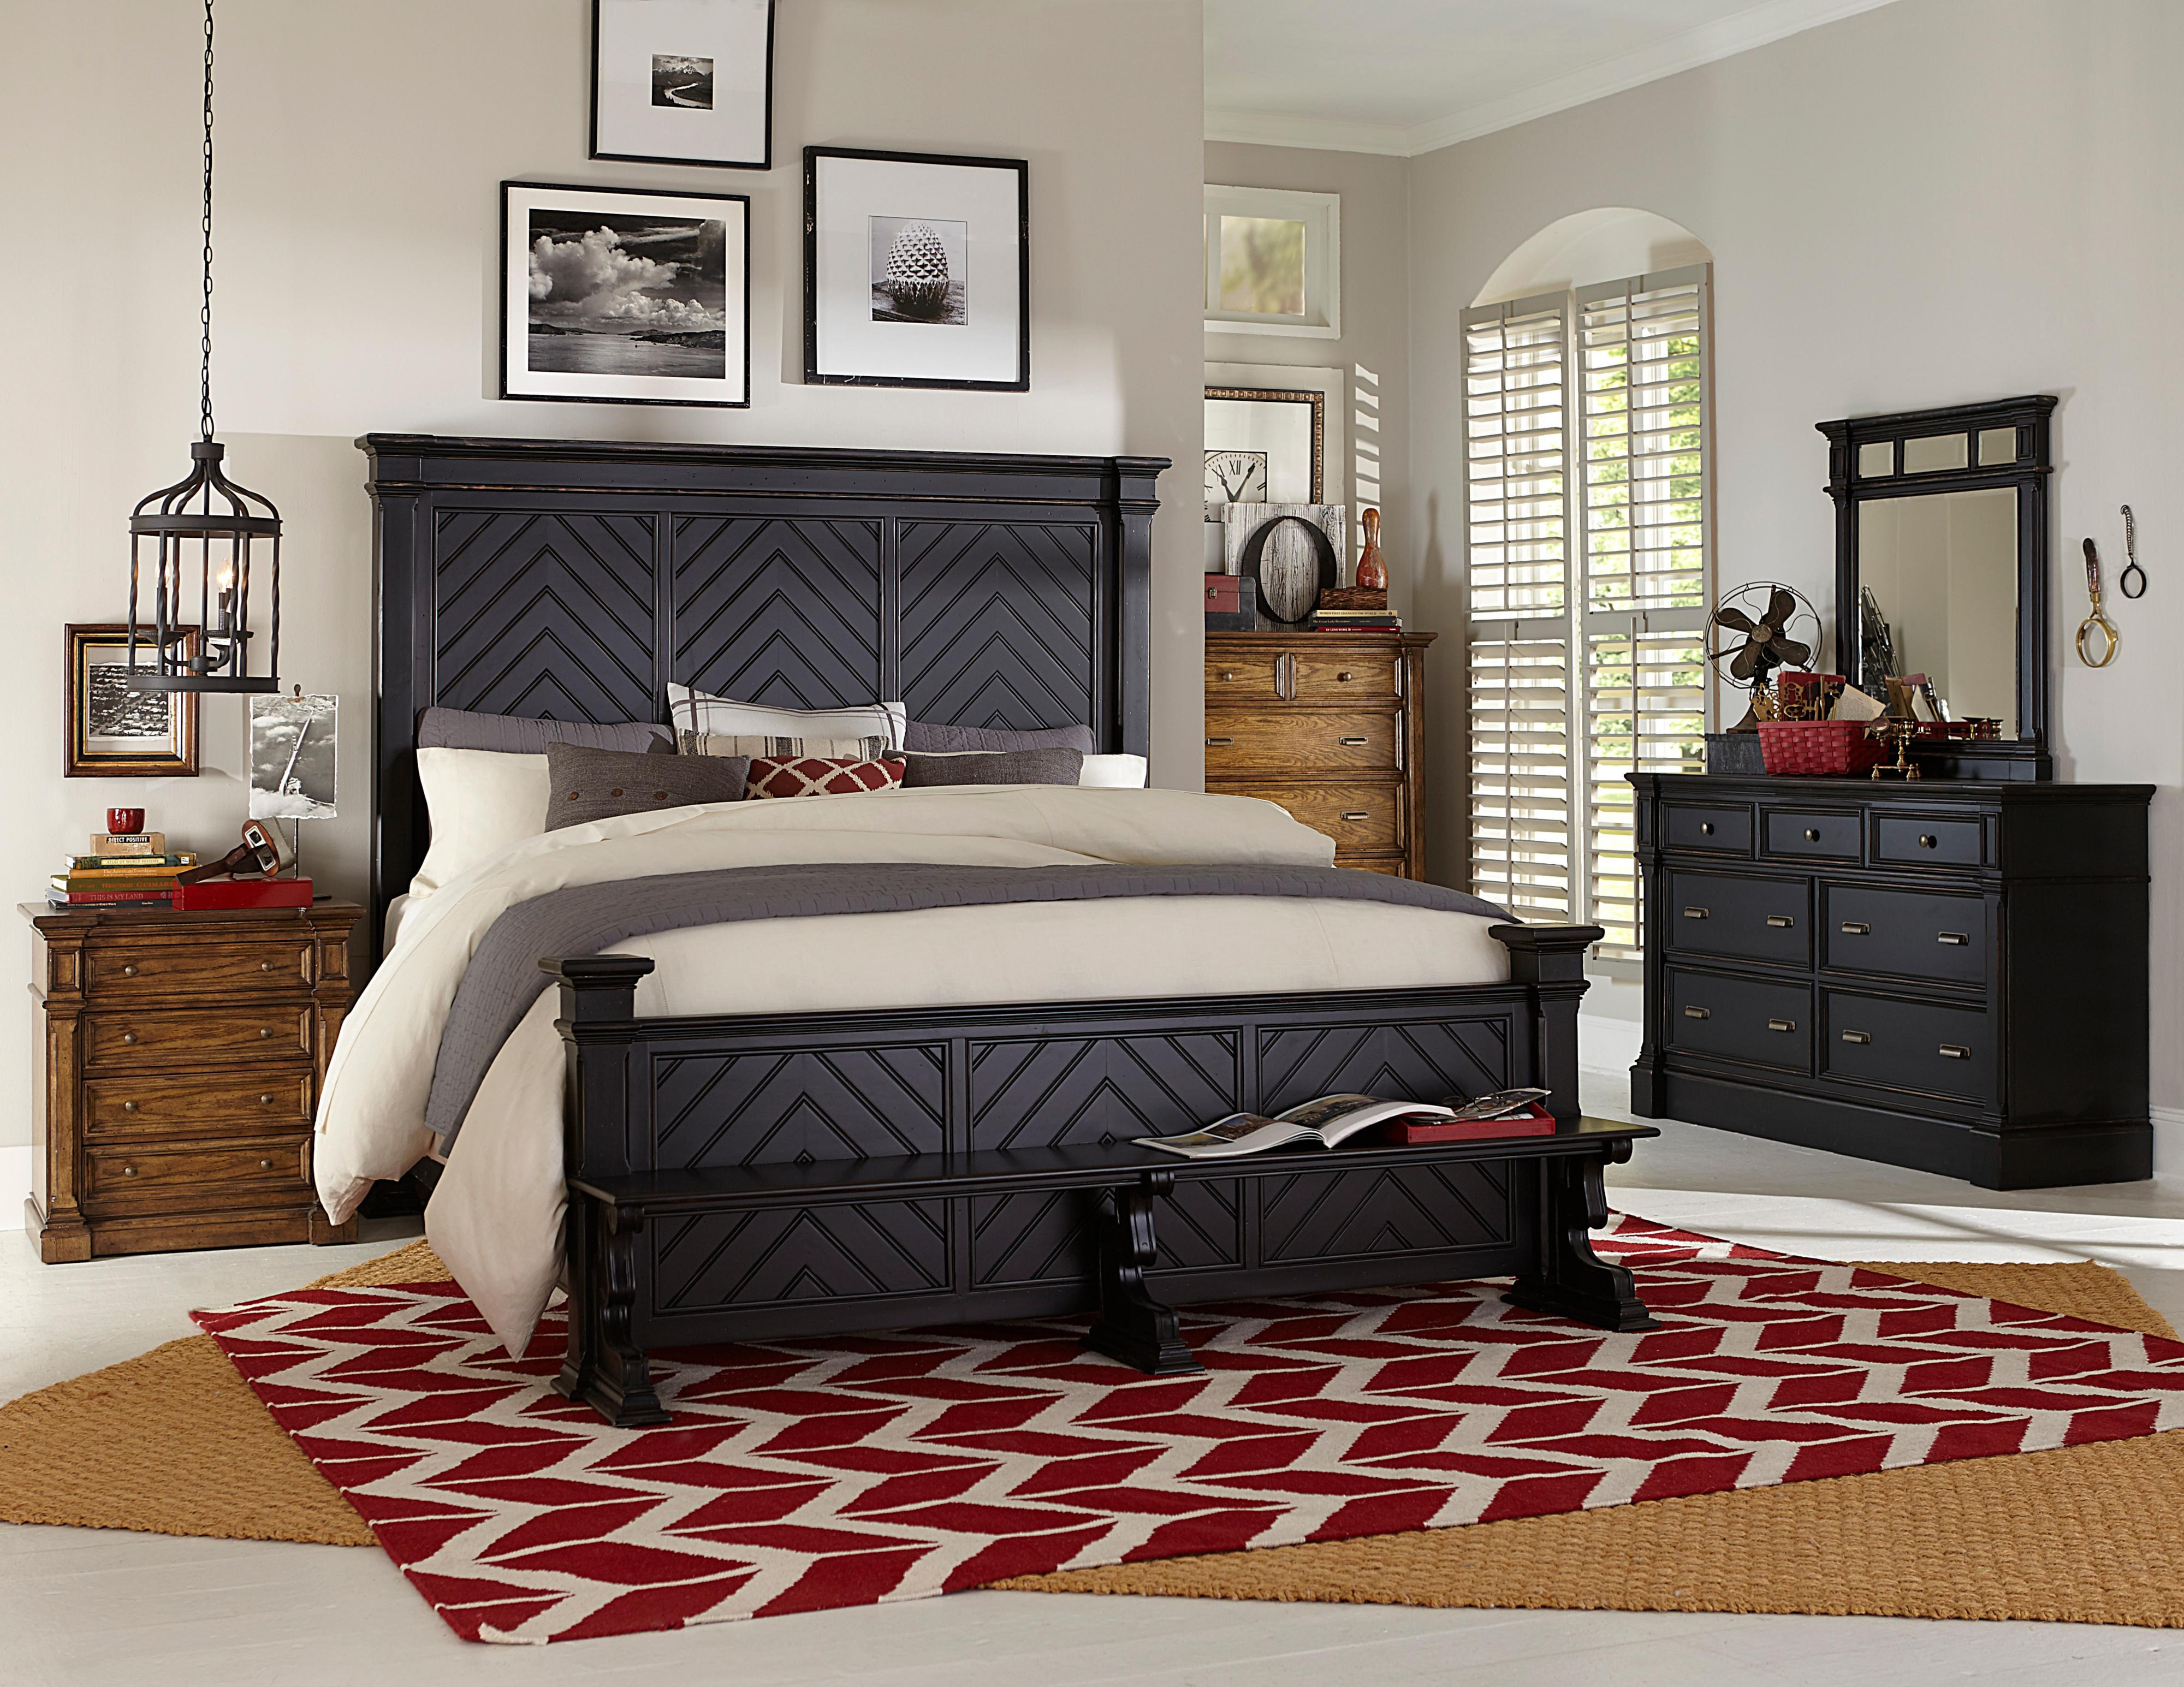 Broyhill Furniture New Vintage California King Bedroom Group - Item Number: 4809 CK Bedroom Group 2